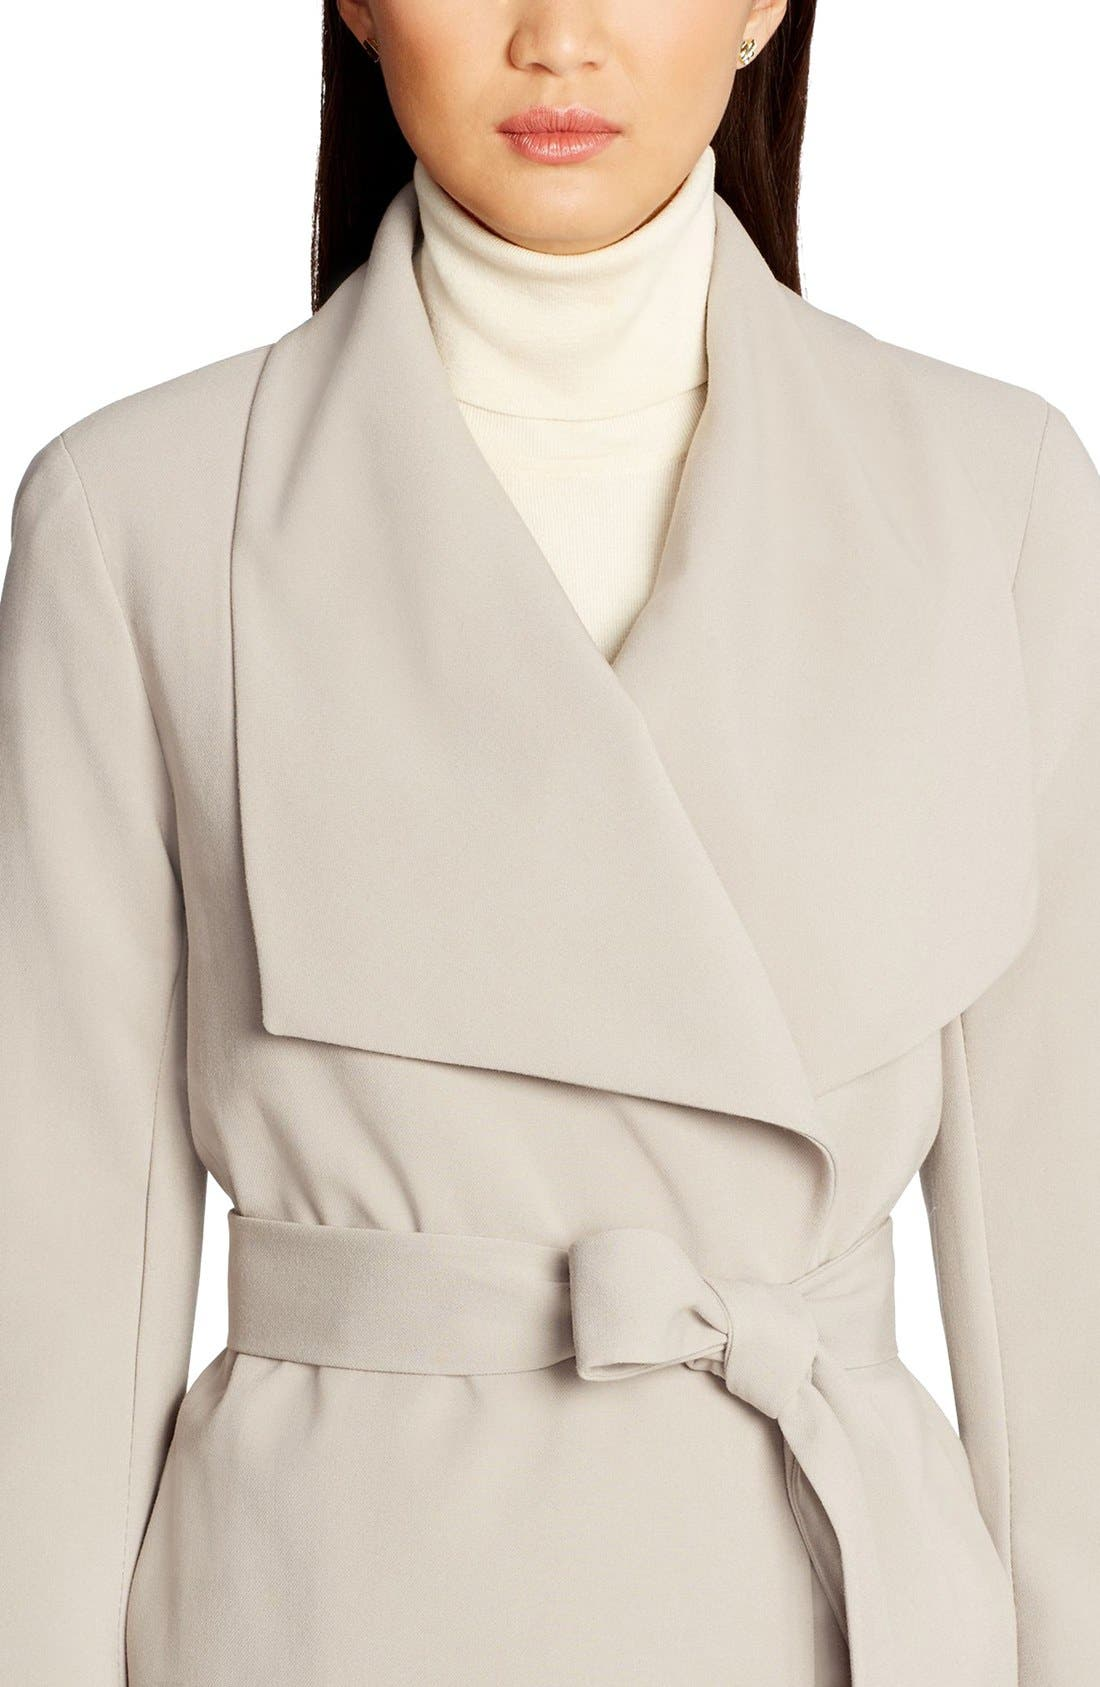 Belted Drape Front Coat,                             Alternate thumbnail 3, color,                             Cork